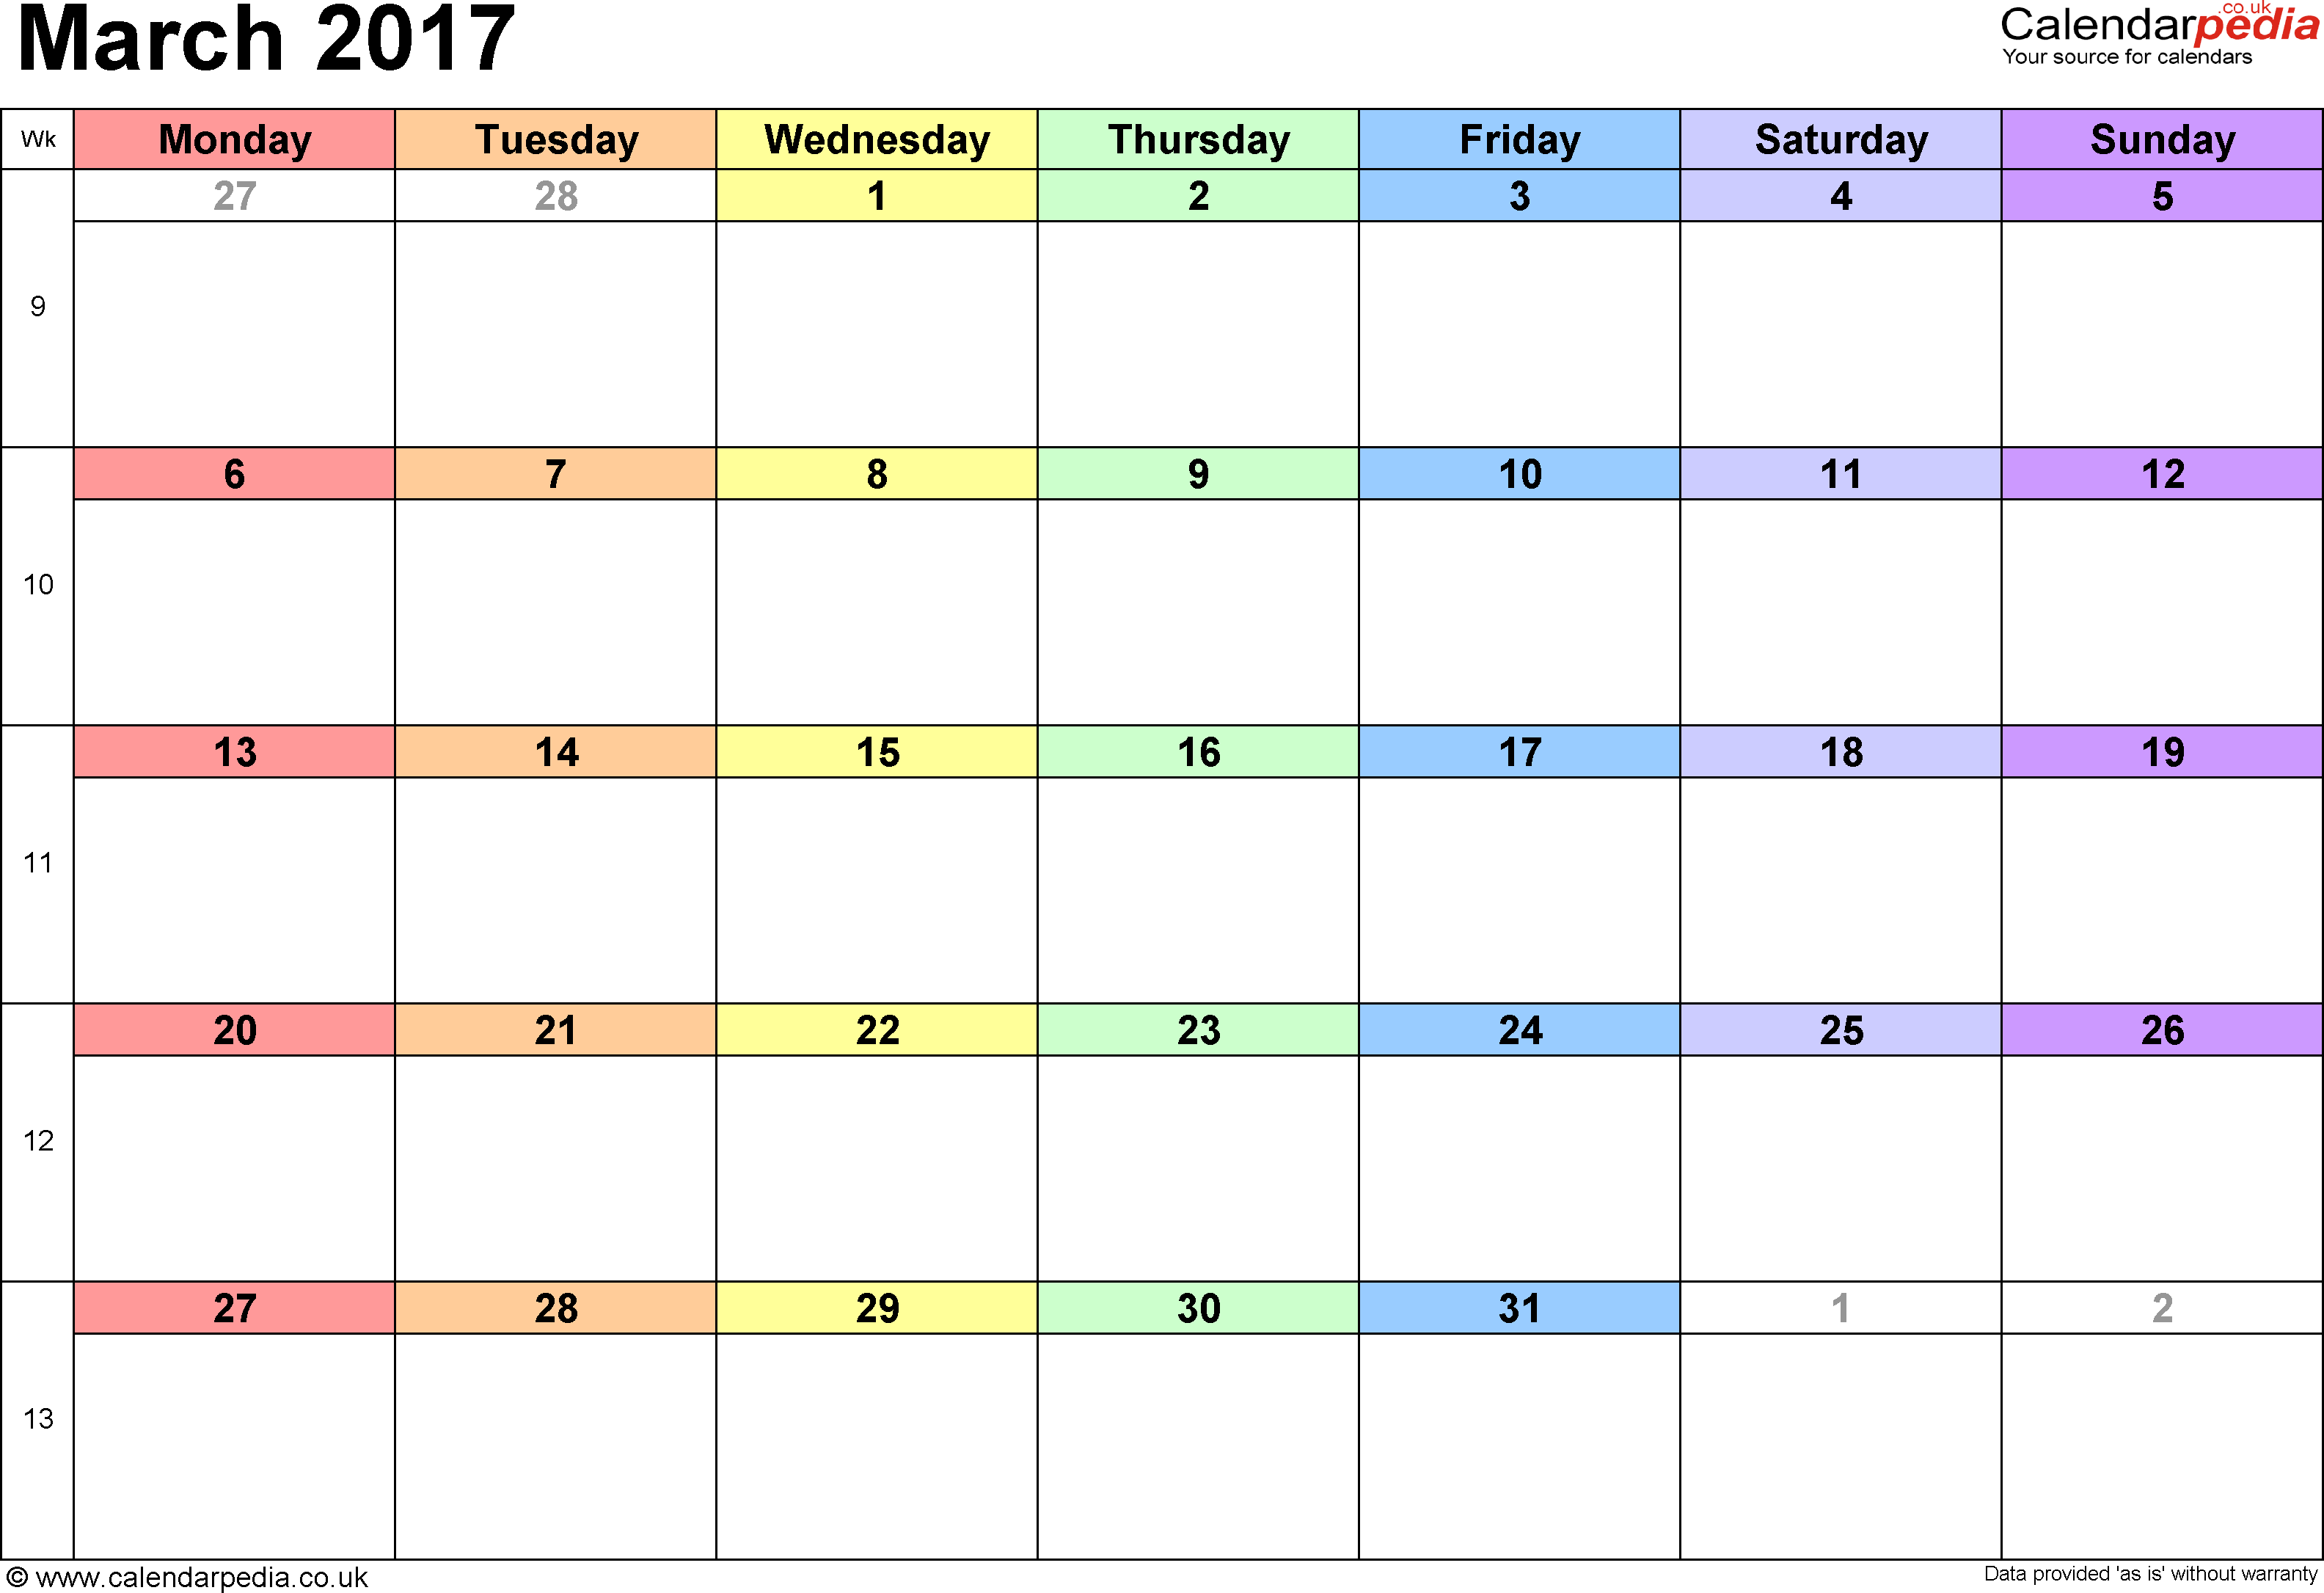 Calendar March 2017, landscape orientation, 1 page, with UK bank holidays and week numbers